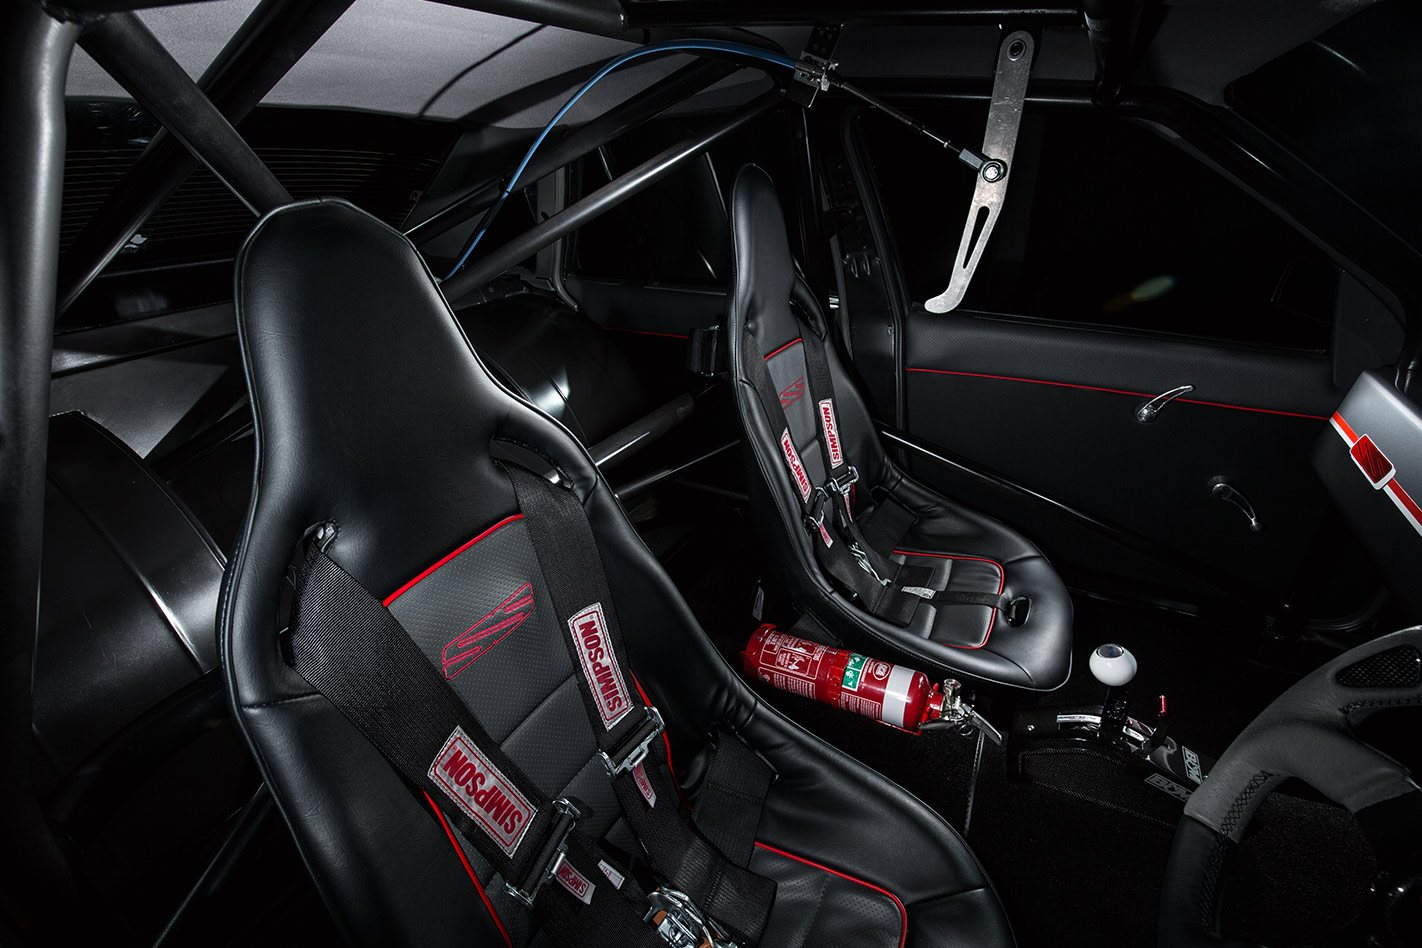 Holden Commodore VN SS seats